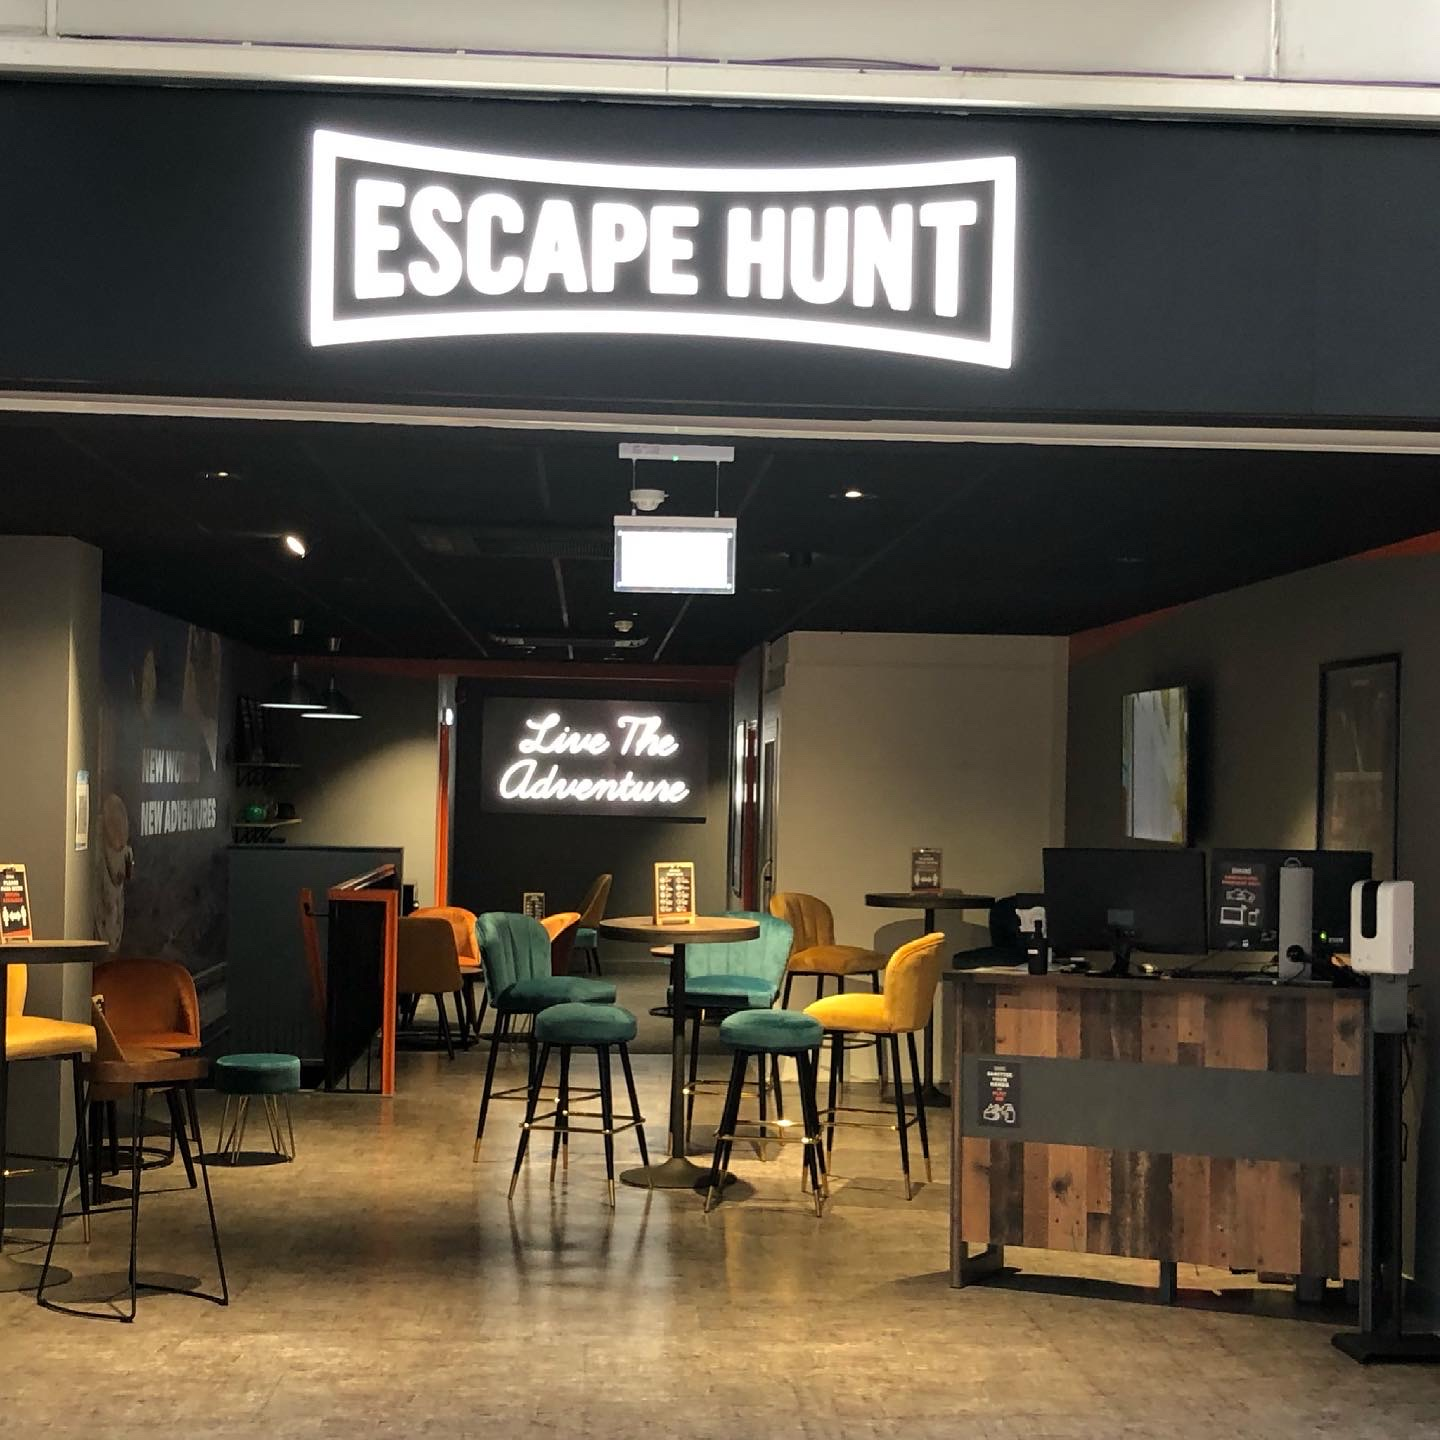 Escape Hunt Basingstoke: Operation Mindfall Review (Ad-gifted experience)